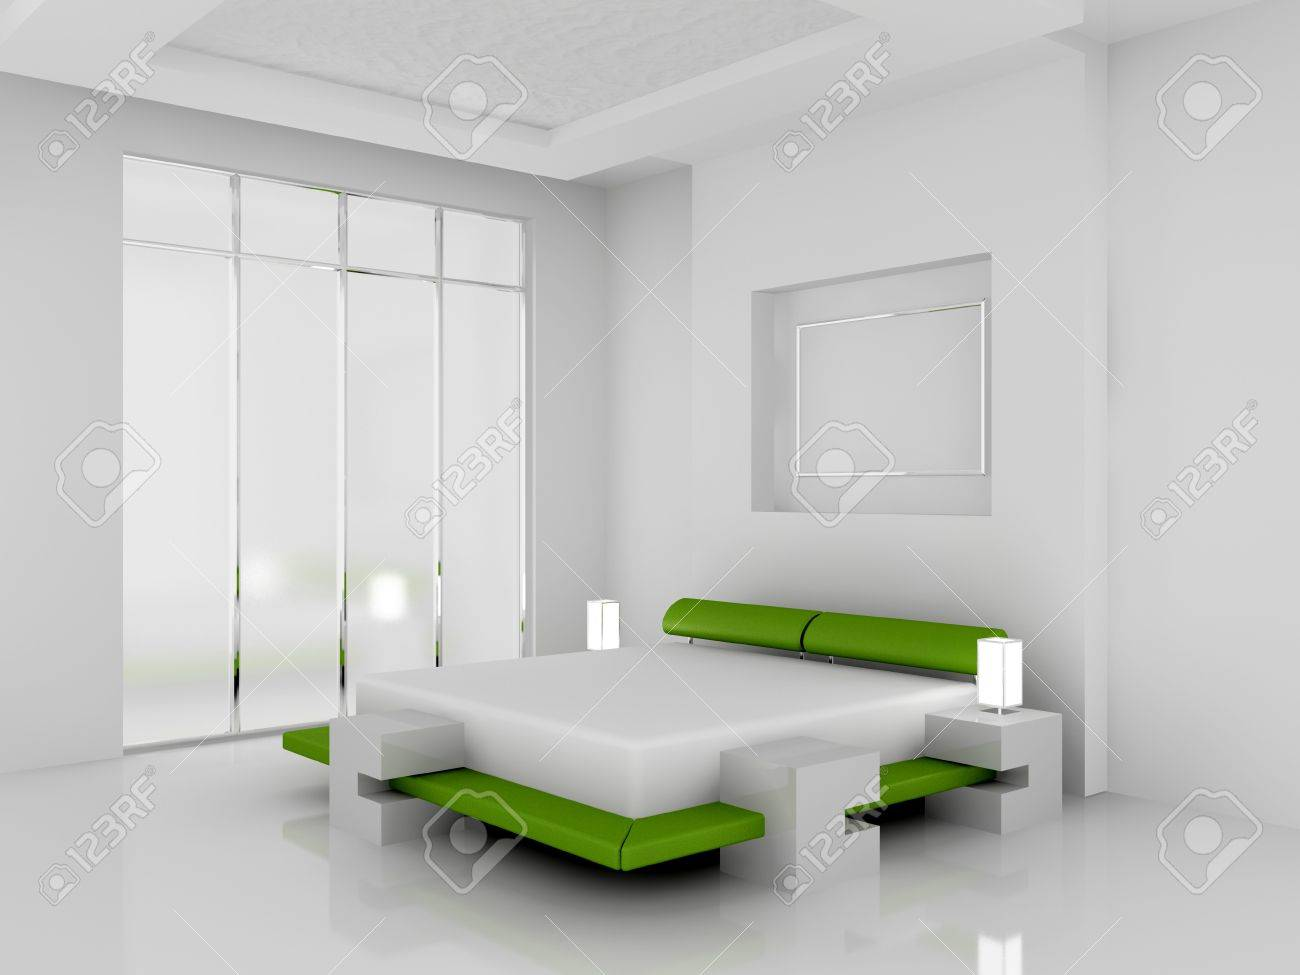 Modern interior of a bedroom room 3D Stock Photo - 7109090